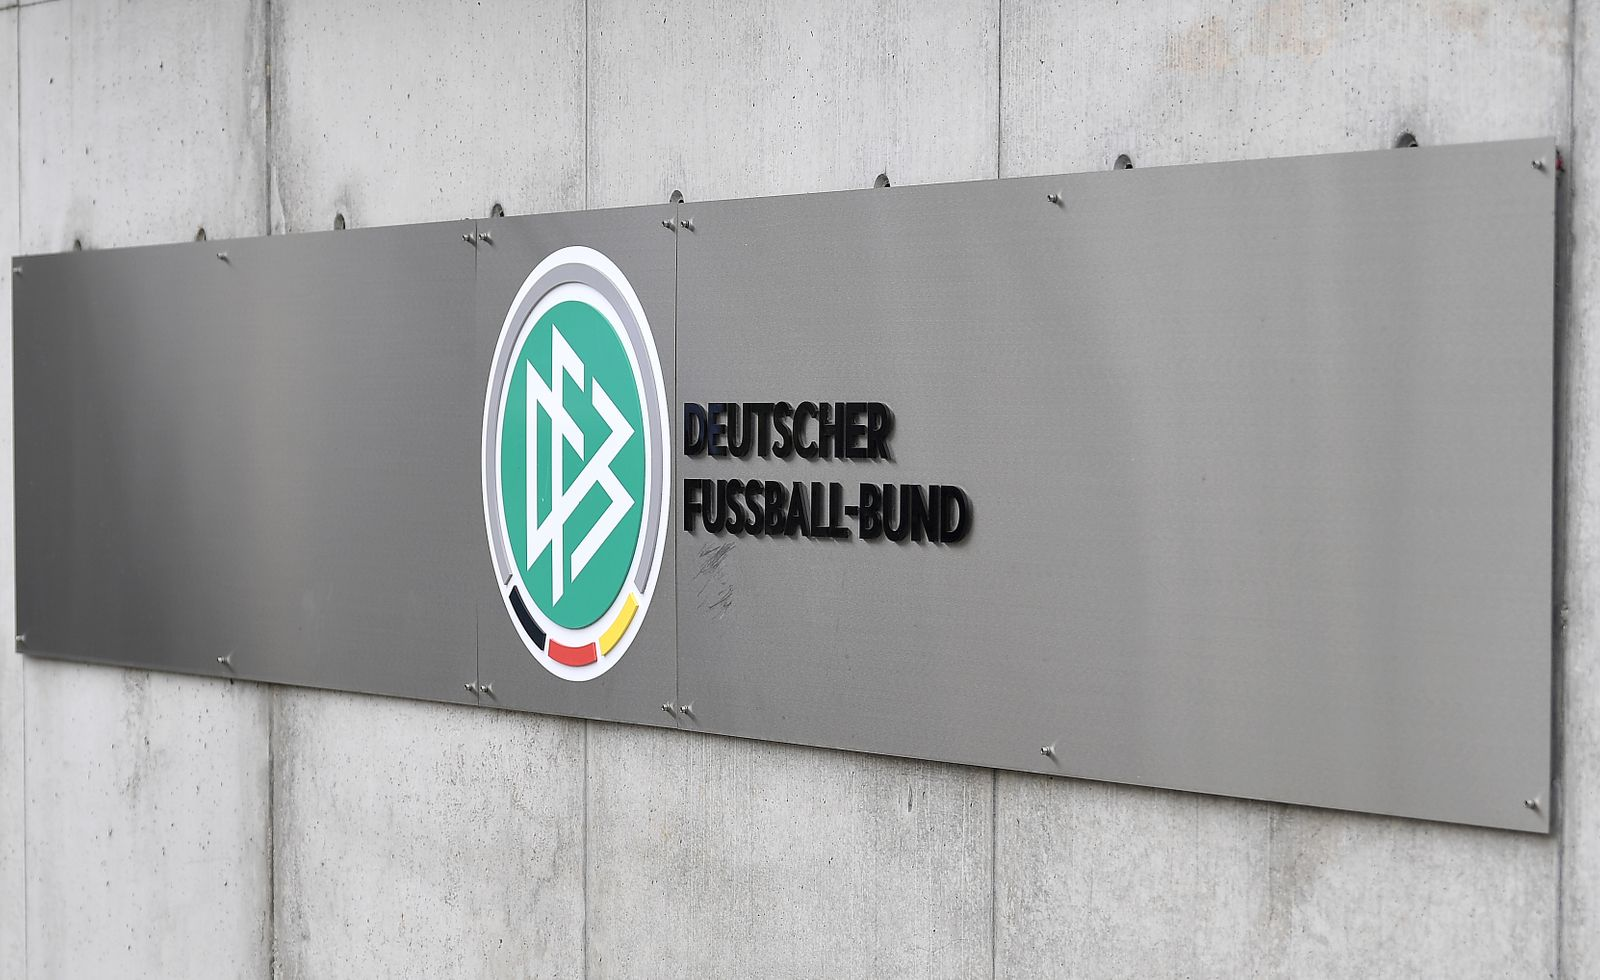 DFB-President Reinhard Grindel Steps Down After German Media Reported On Financial Irregularities